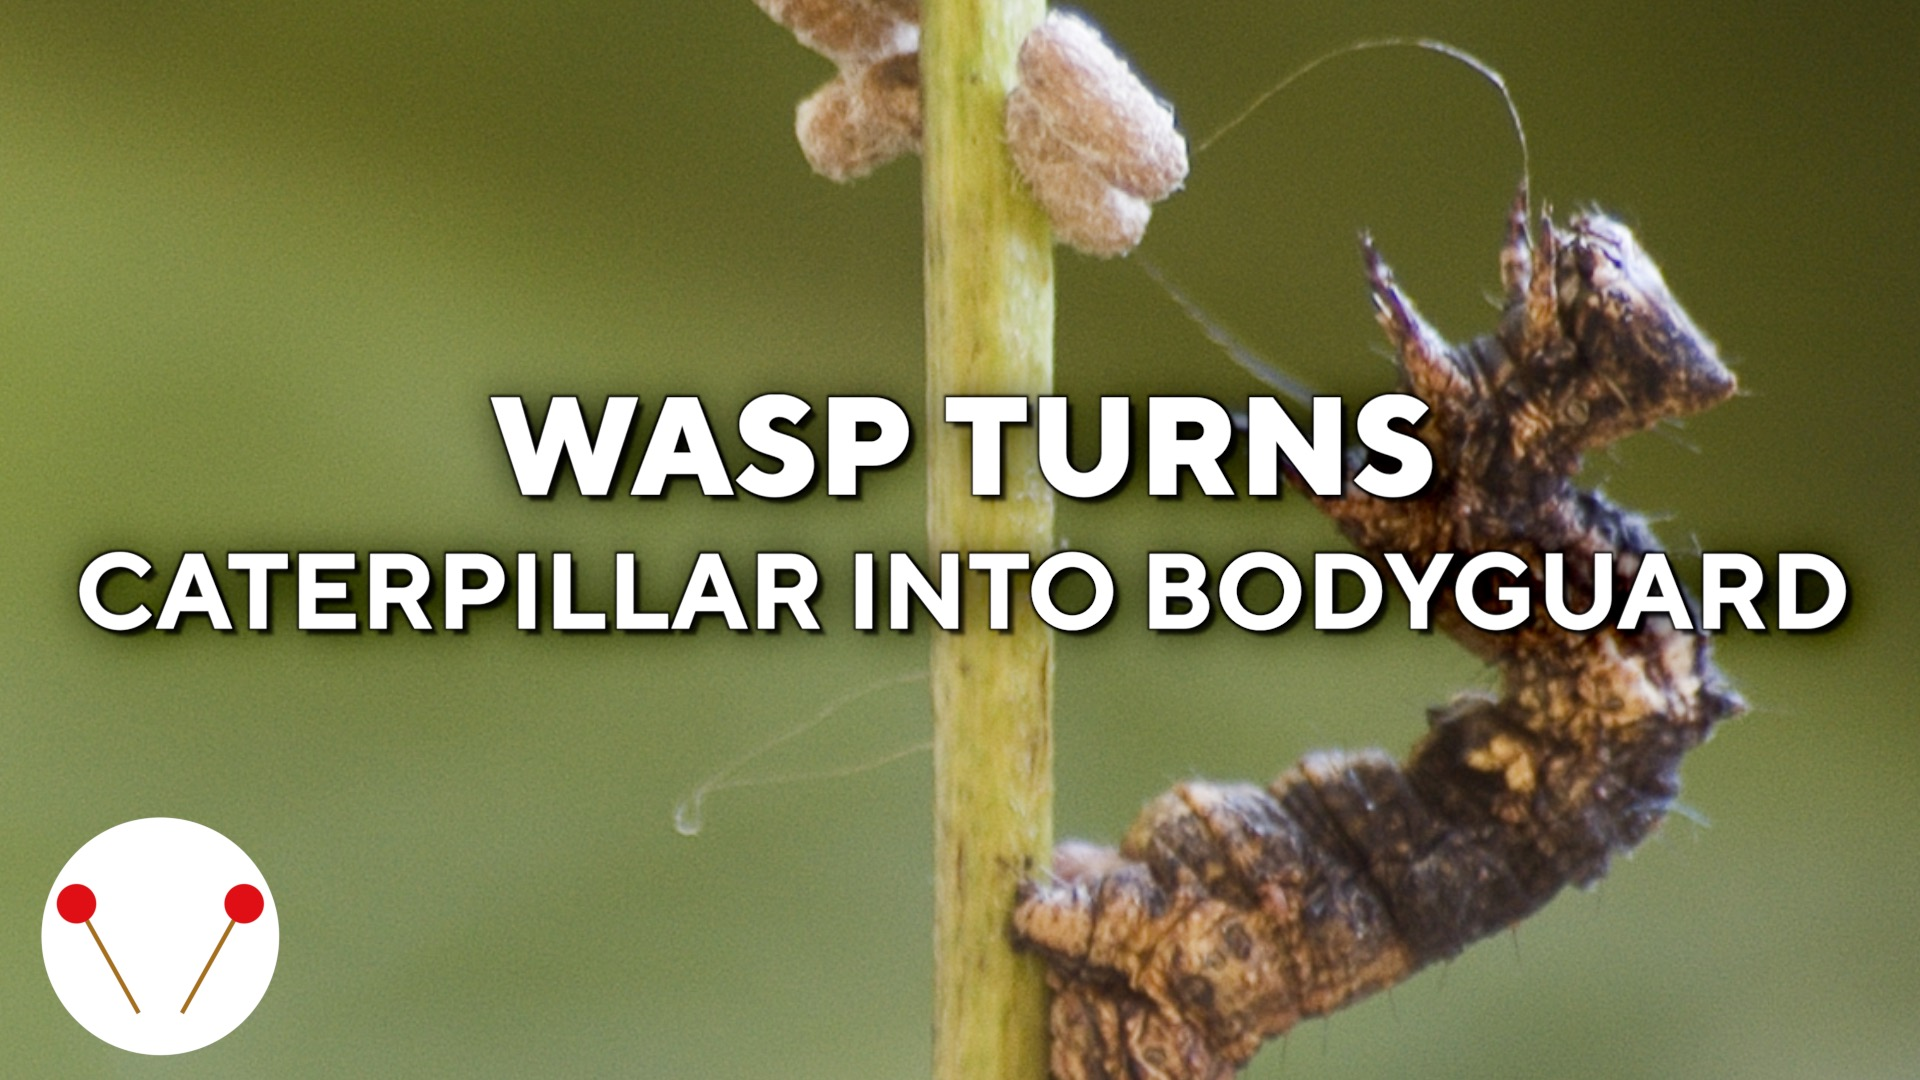 Wasp turns zombie caterpillar into its bodyguard